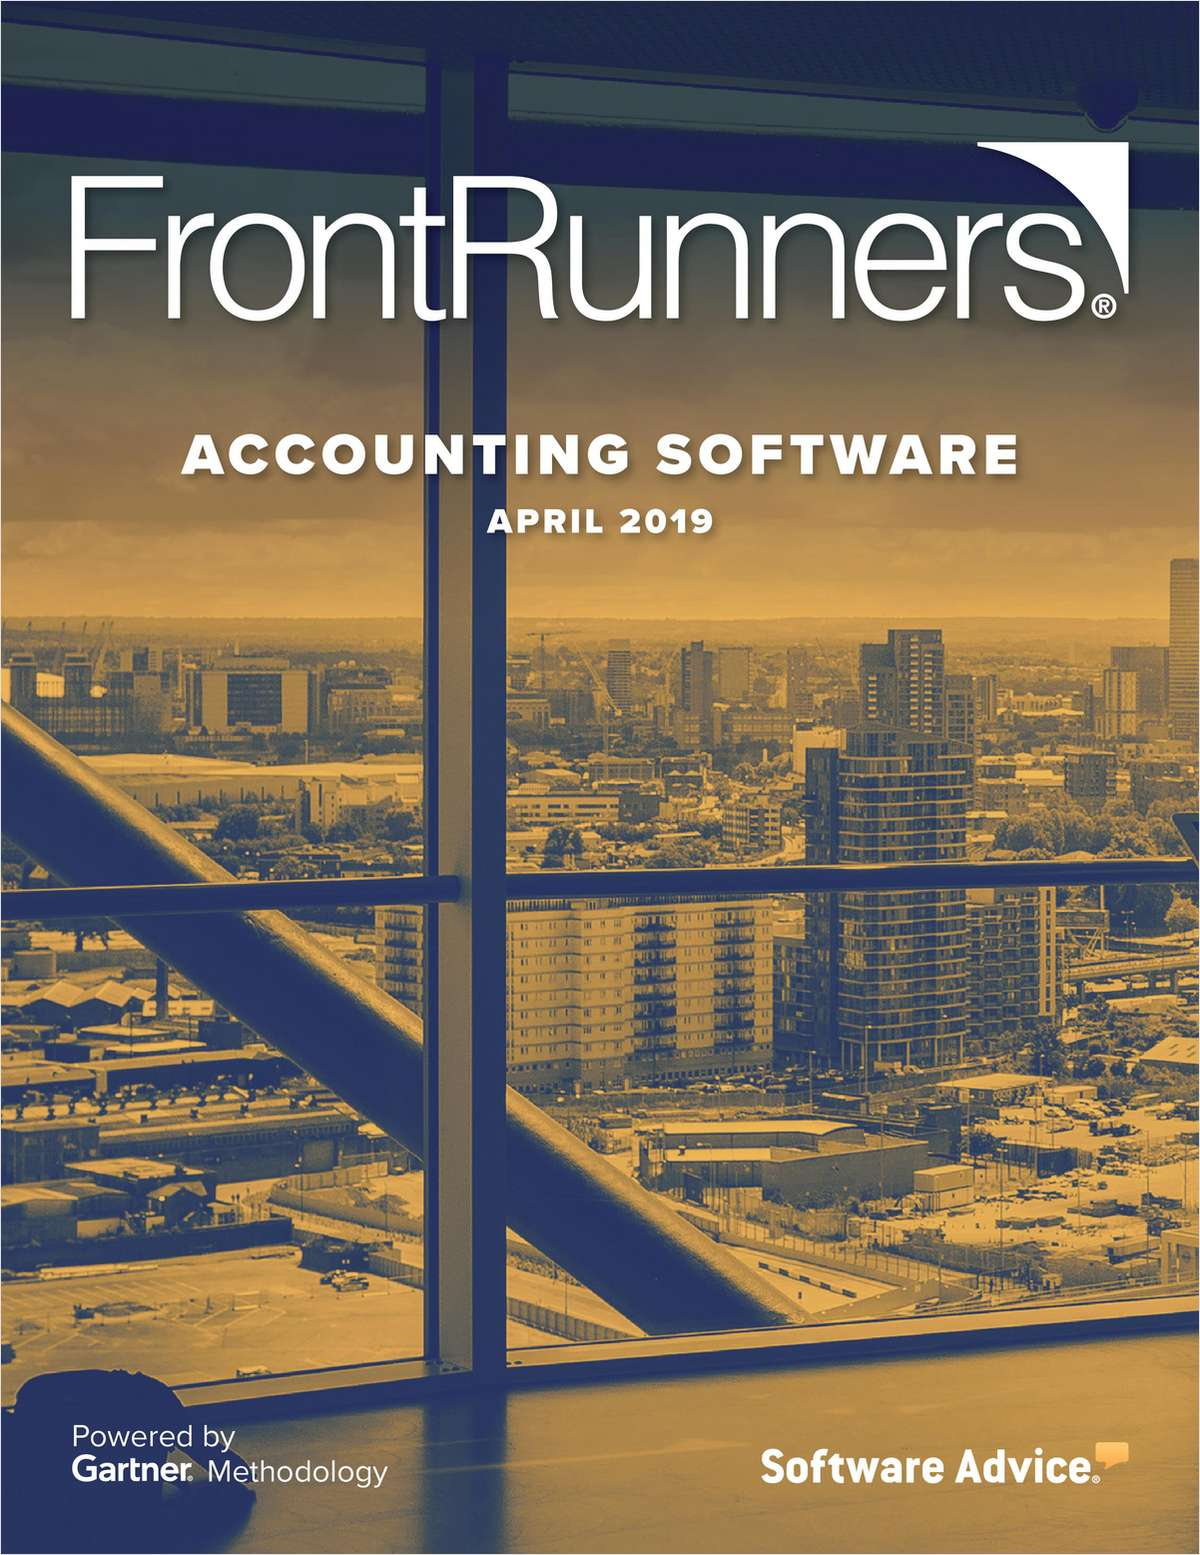 Top Rated FrontRunners for 2019 Accounting Software